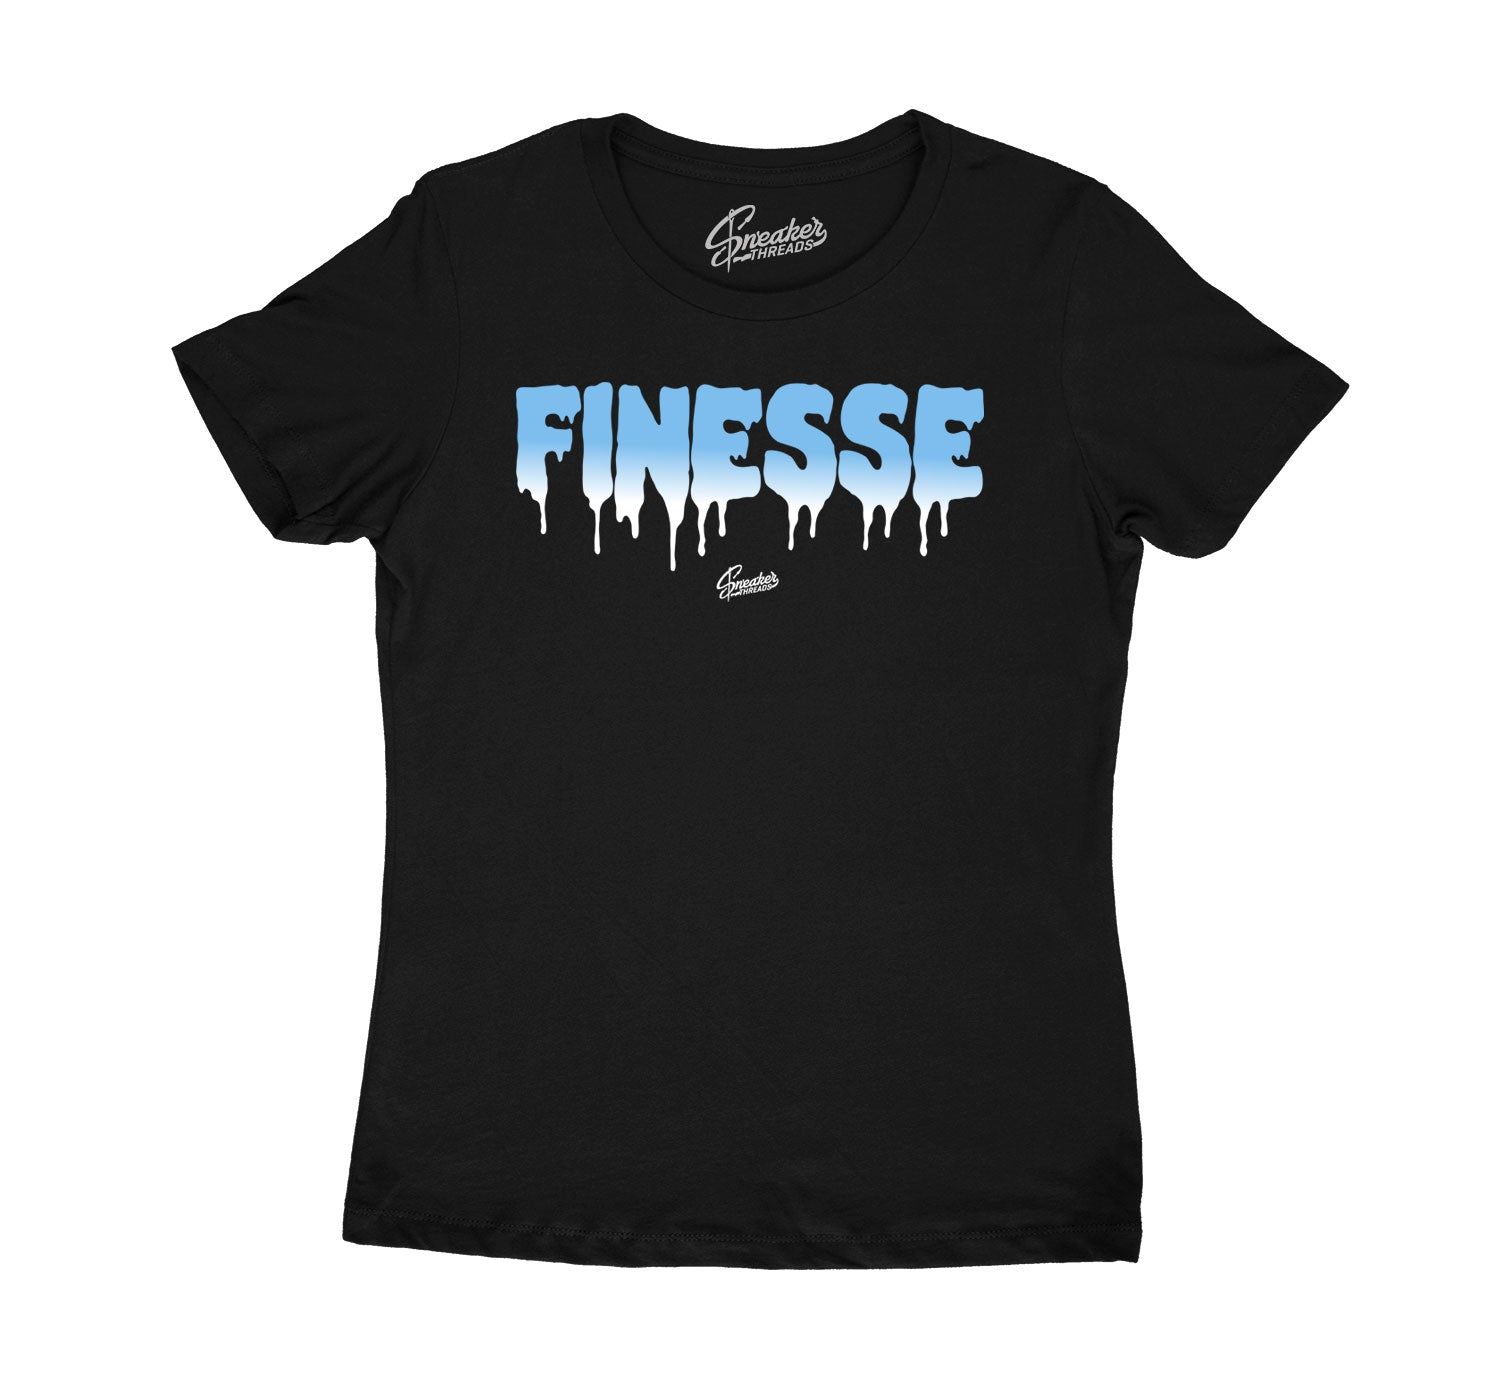 Womens University Blue 1 Shirt - Finesse - Black